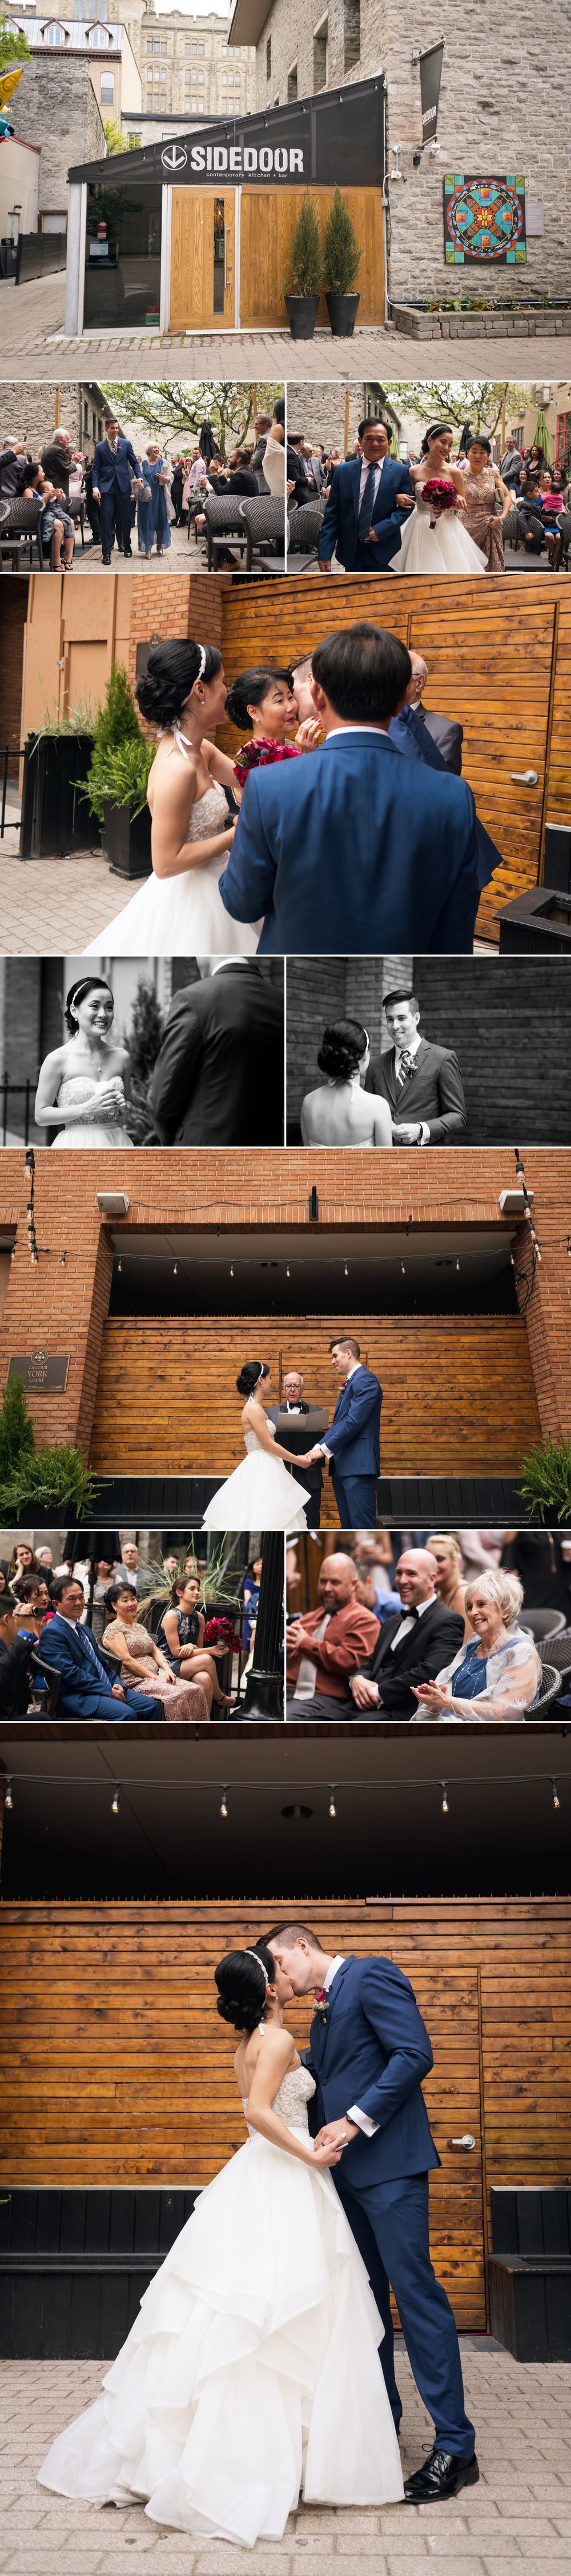 An outdoor wedding ceremony held at Sidedoor Restaurant in downtown Ottawa